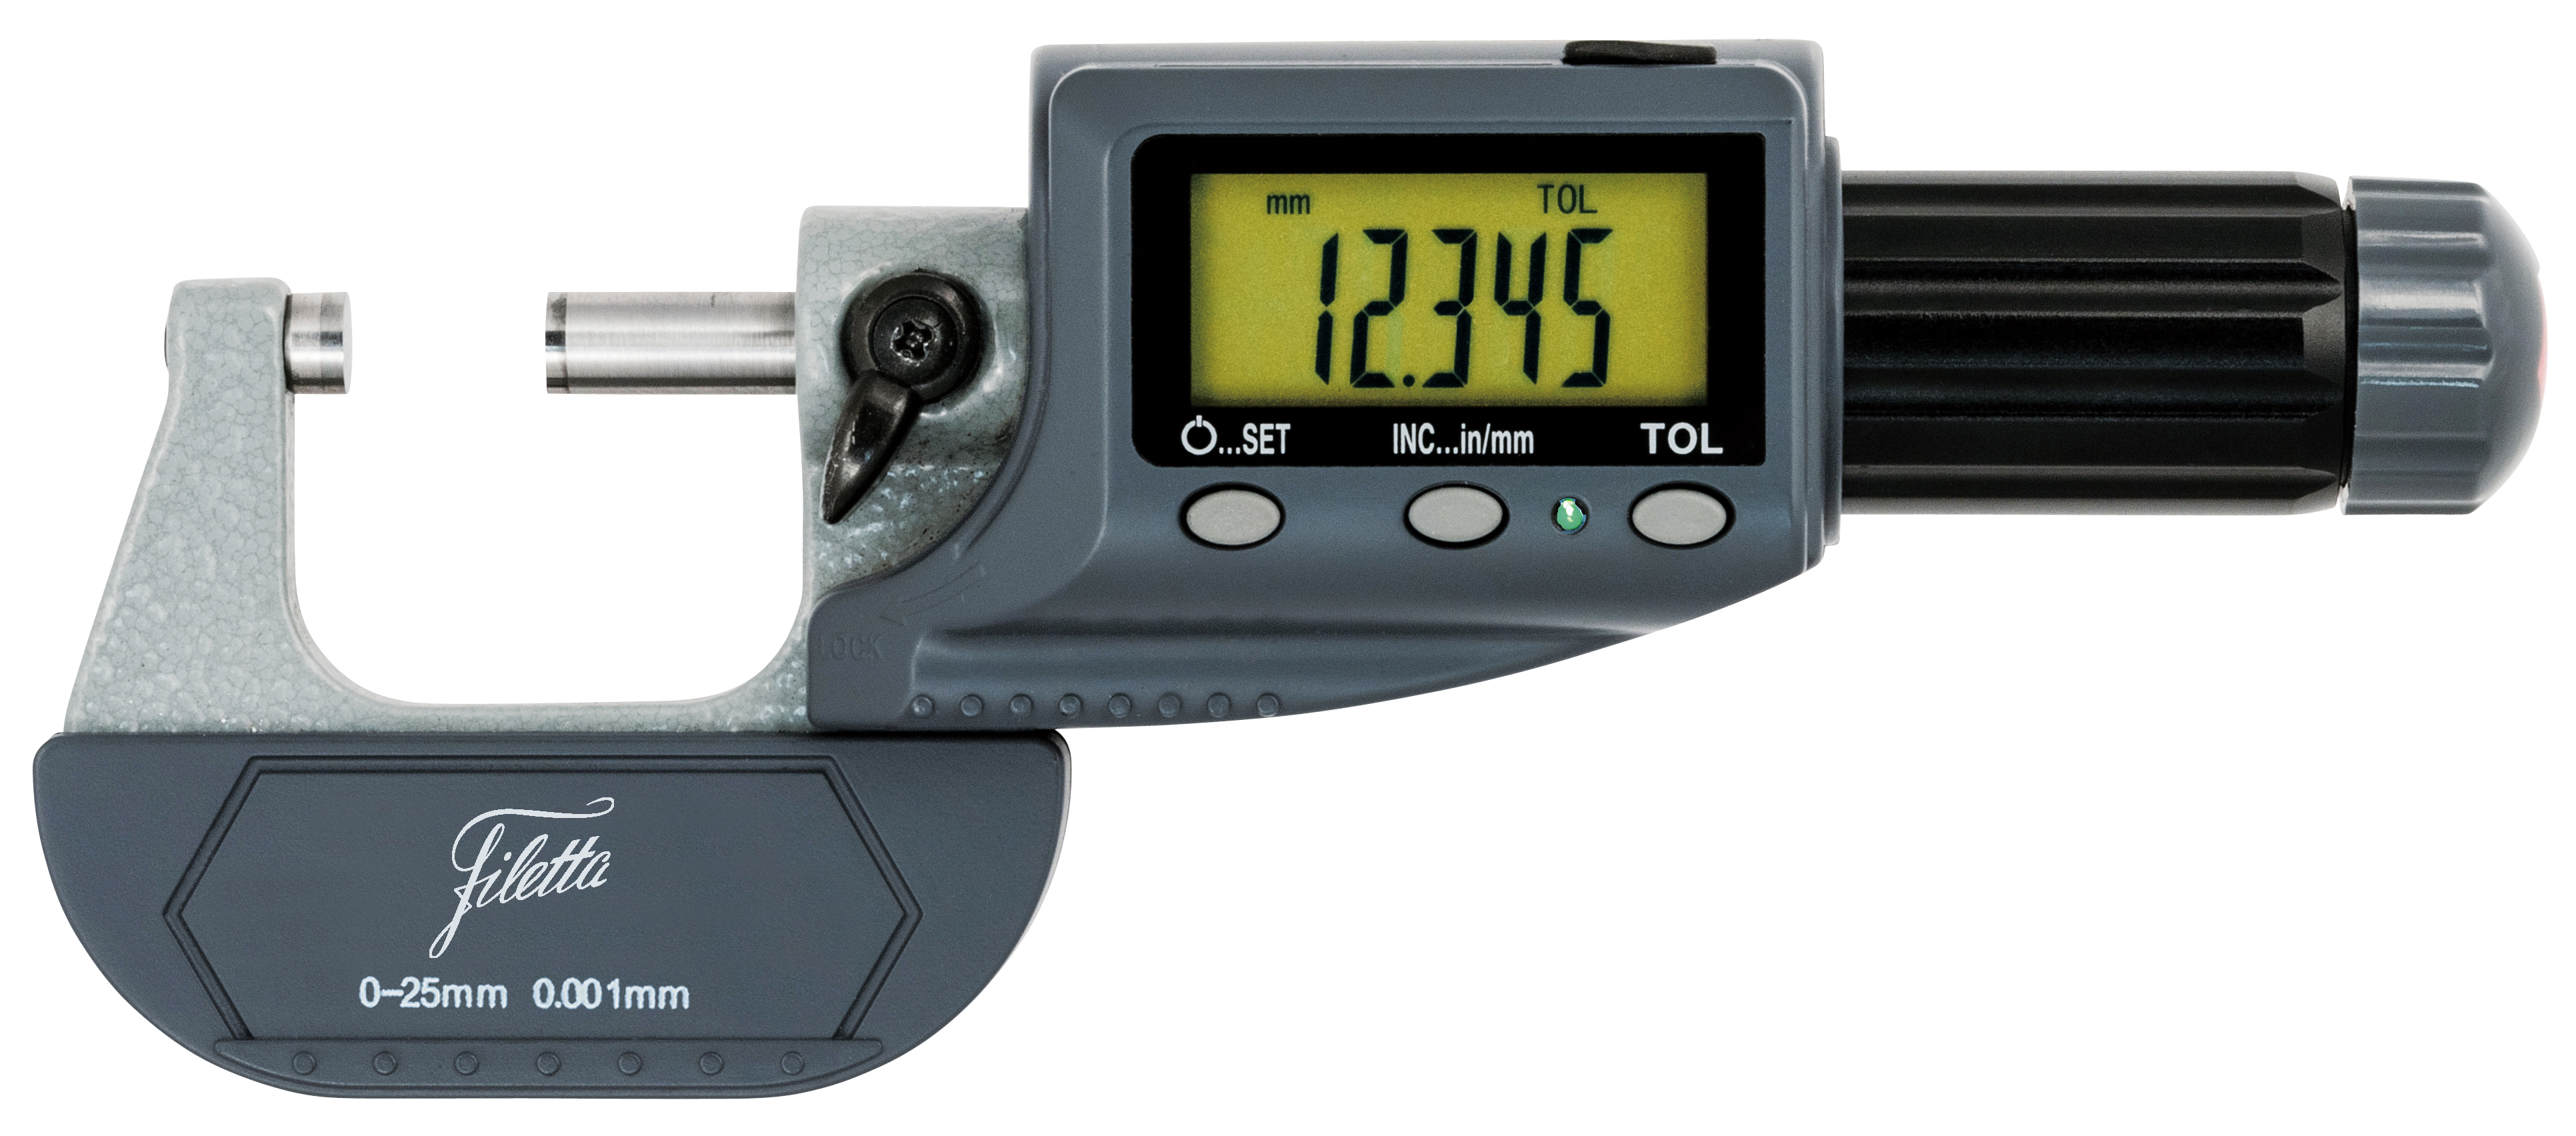 Digital outside micrometer with function to set tolerance limits, 25-50mm, IP 54